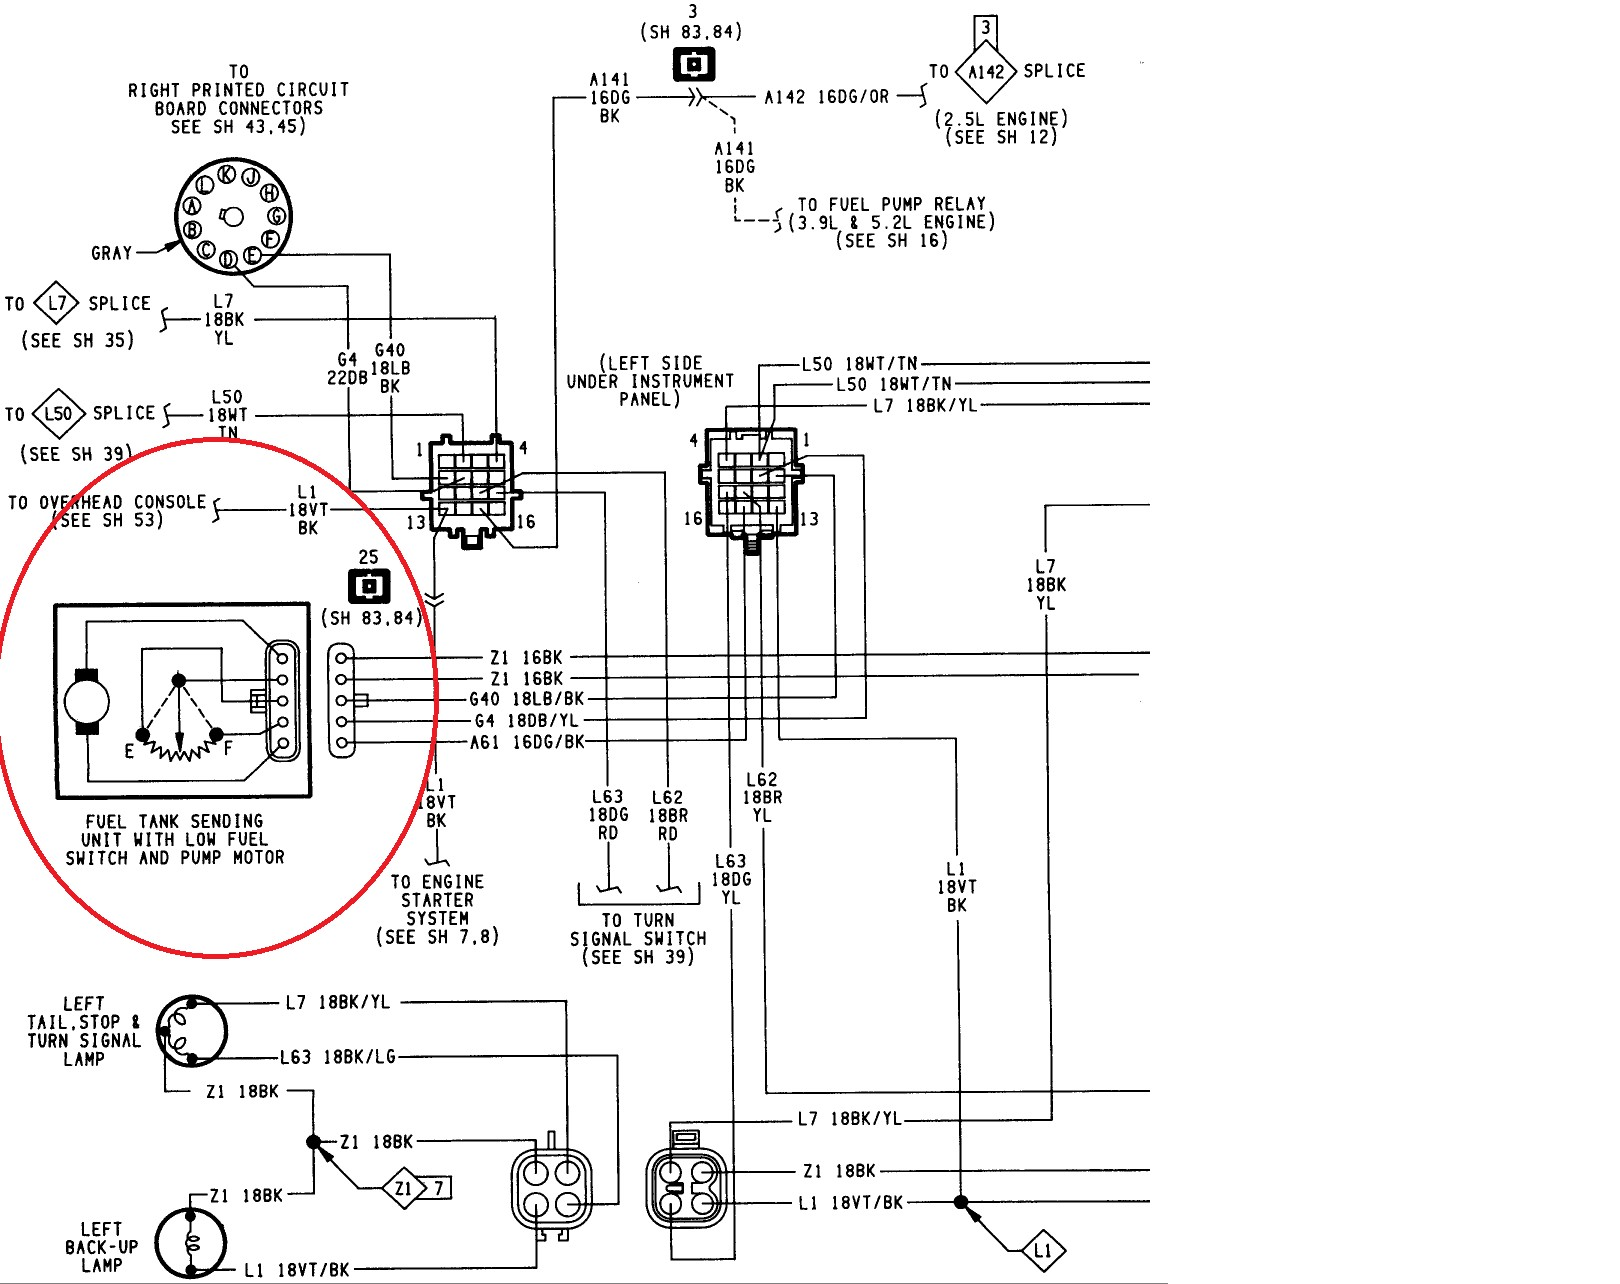 84 F150 Wiring Diagram - 16.xaz.capecoral-bootsvermietung.de •  F Ignition Wiring Diagram on 02 f150 headlight, 02 f150 exhaust, 2002 ford f-250 super duty fuse diagram, 02 f150 body, 02 f150 lights, 02 f150 fuel pump, 02 f150 specifications, 02 f150 thermostat, 02 f150 accessories, 2001 toyota camry engine diagram, ford f150 solenoid diagram, 1997 ford f150 fuse diagram, 02 f150 fuse diagram, 02 f150 wheels, 99 ford f-150 fuse diagram, 02 f150 alternator,